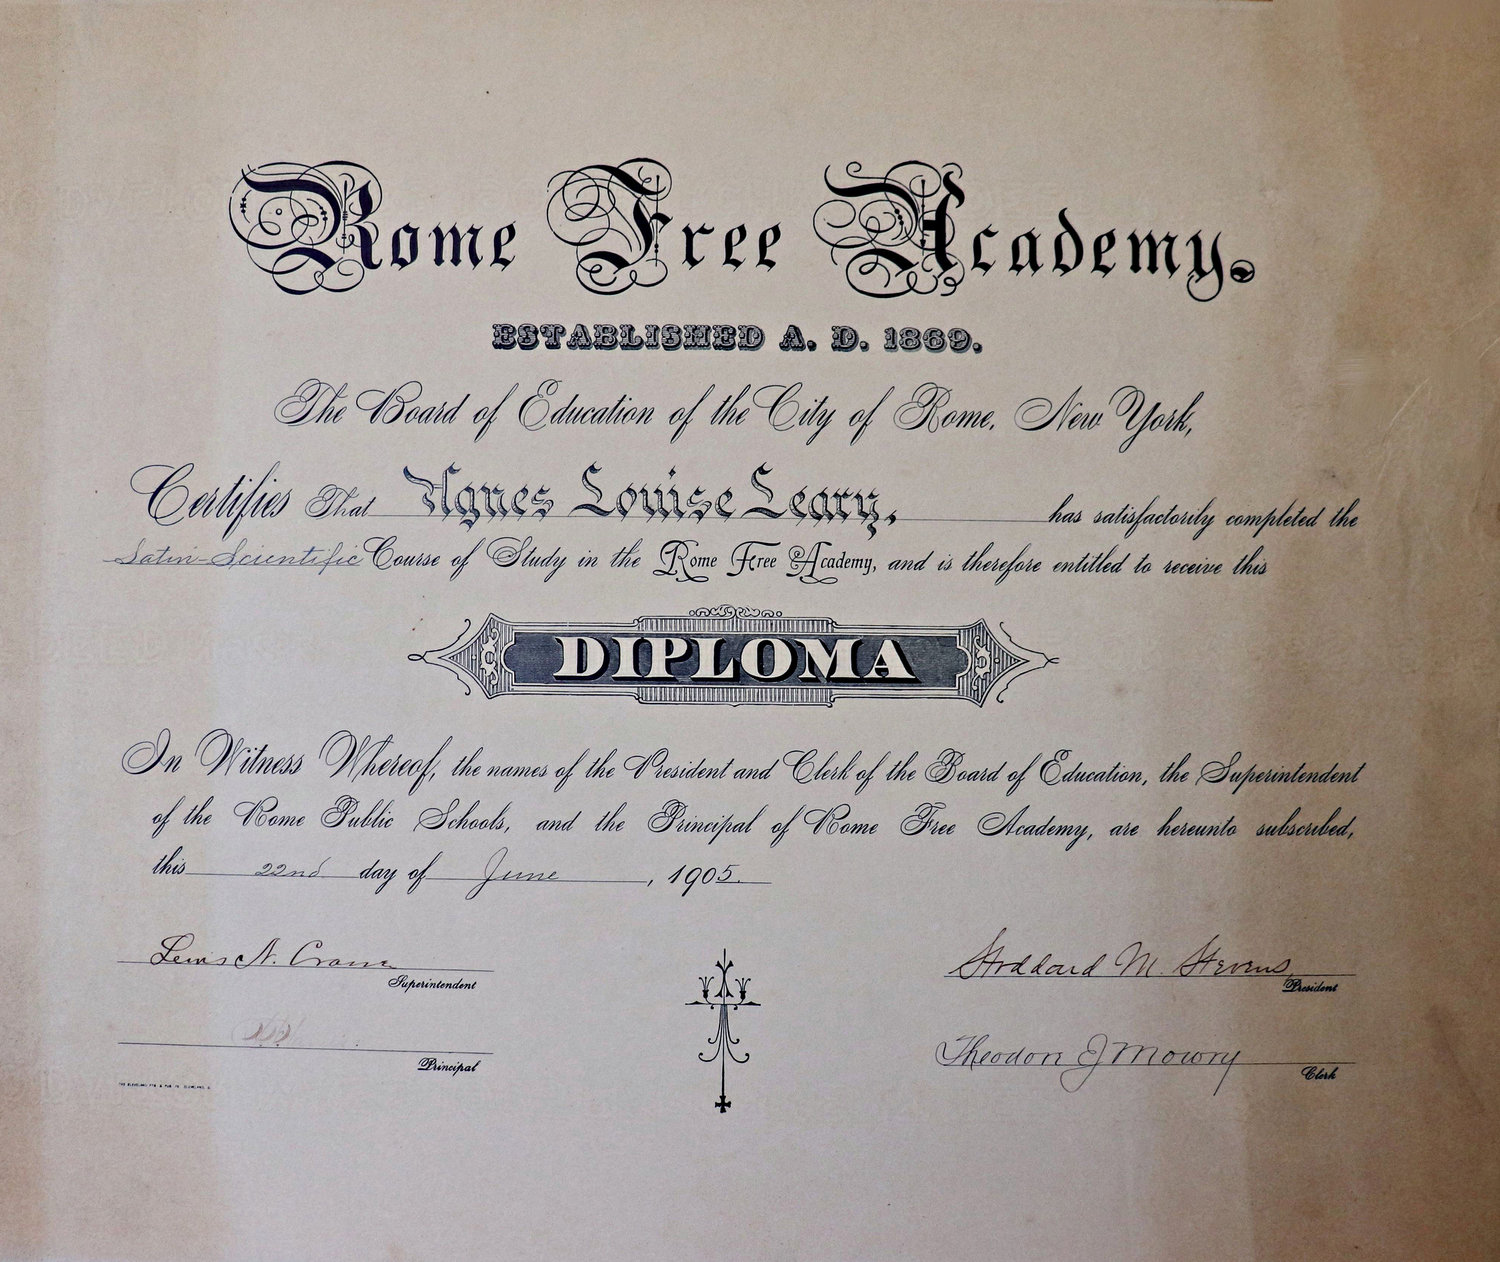 Pictured is Agnes Leary's diploma from Rome Free Academy. This, along with other items were found in the attic of a local residence and returned to Leary's descendants.